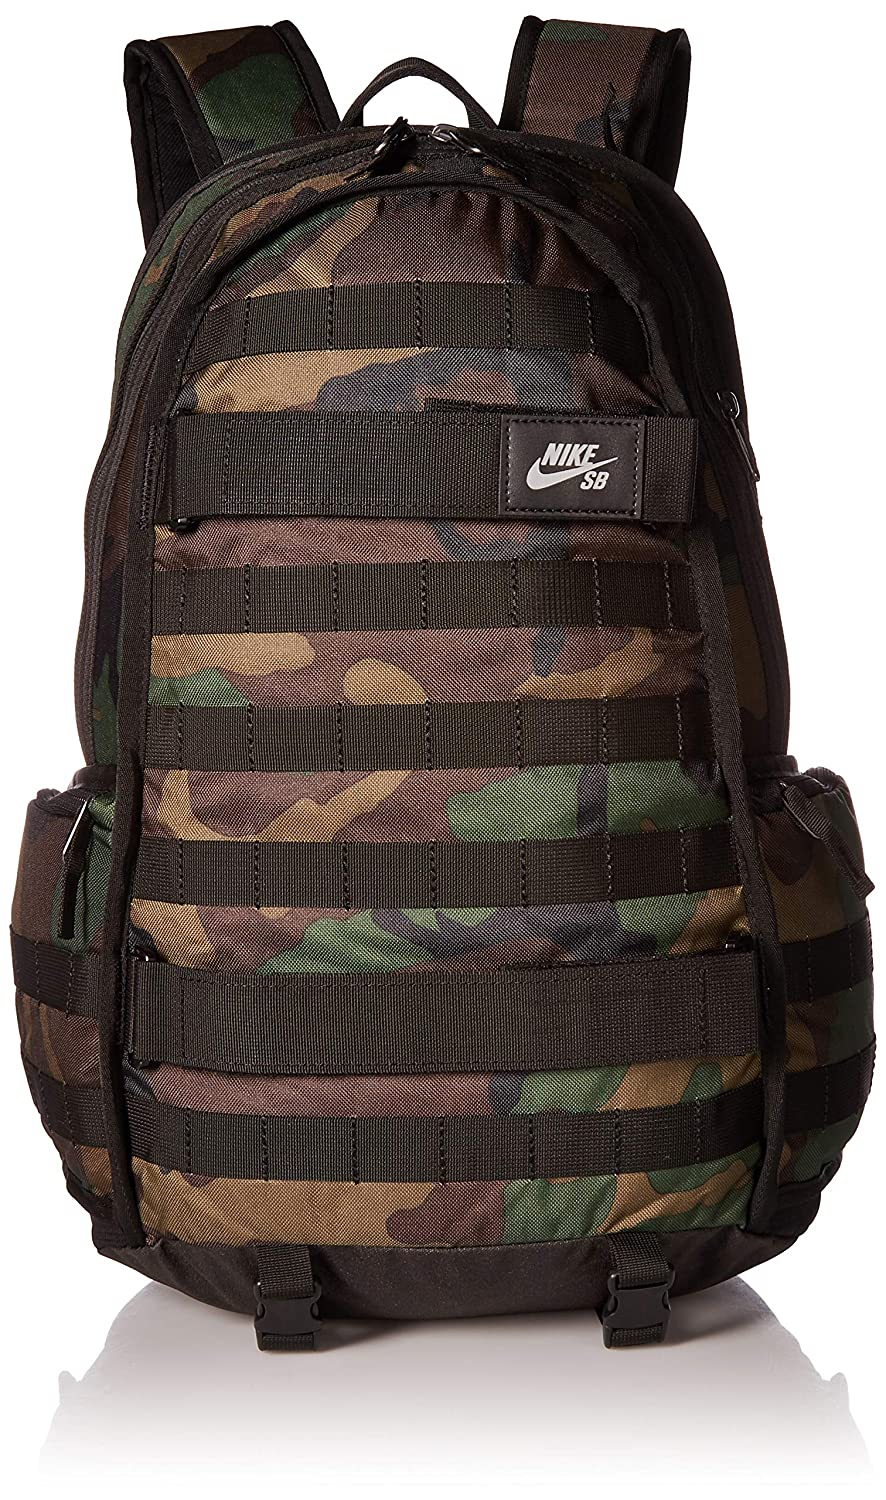 The Nike Unisex NSW RPM Backpack travel product recommended by Daniel Shepherd on Lifney.